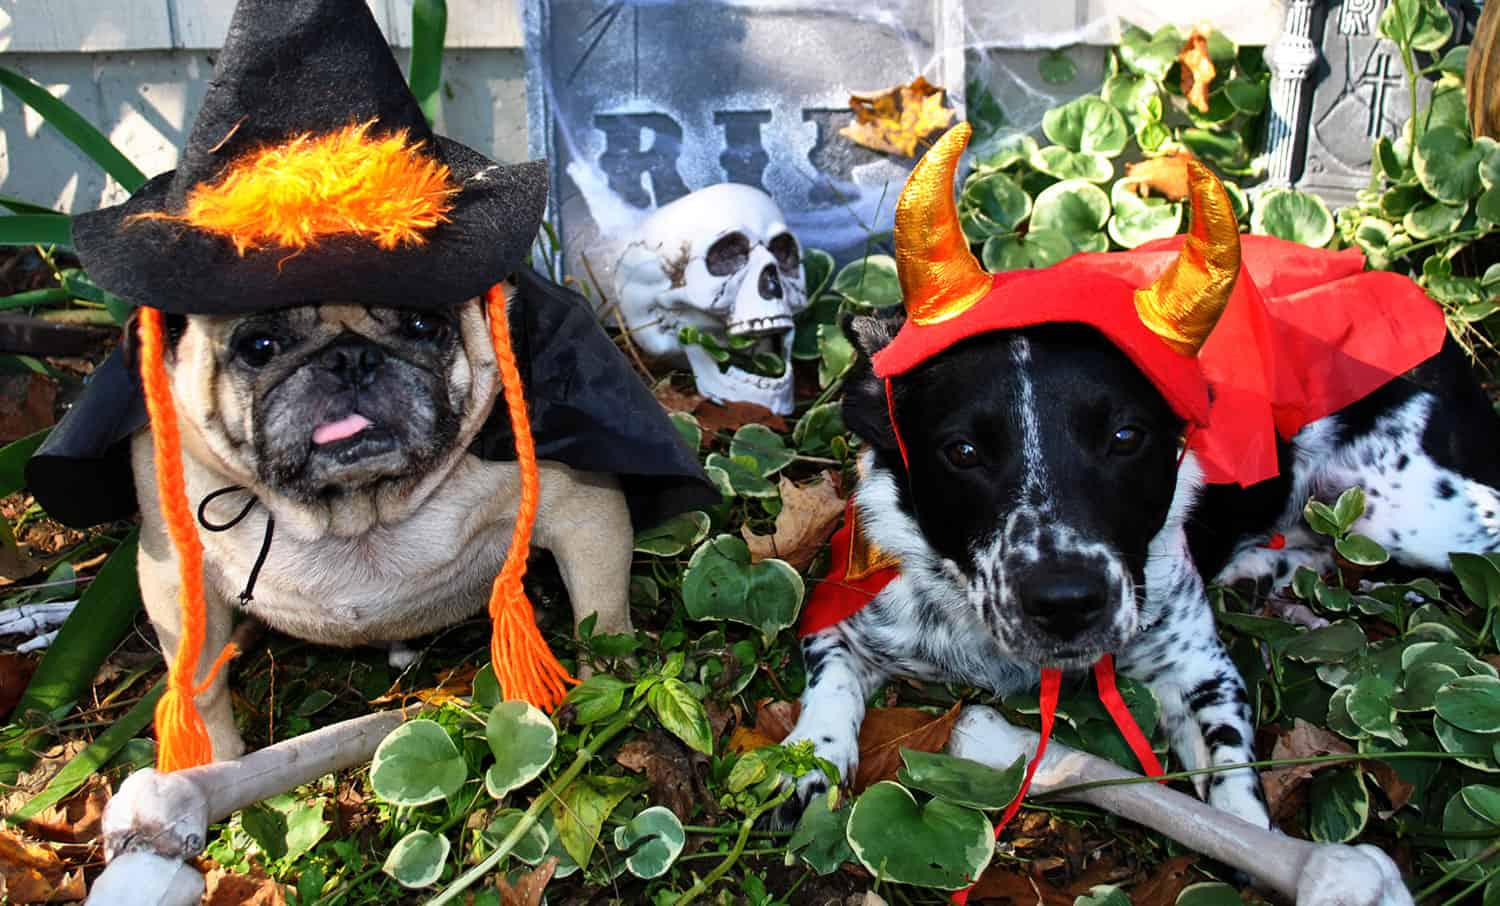 Top Tips to Keep Your Dog Safe at Halloween